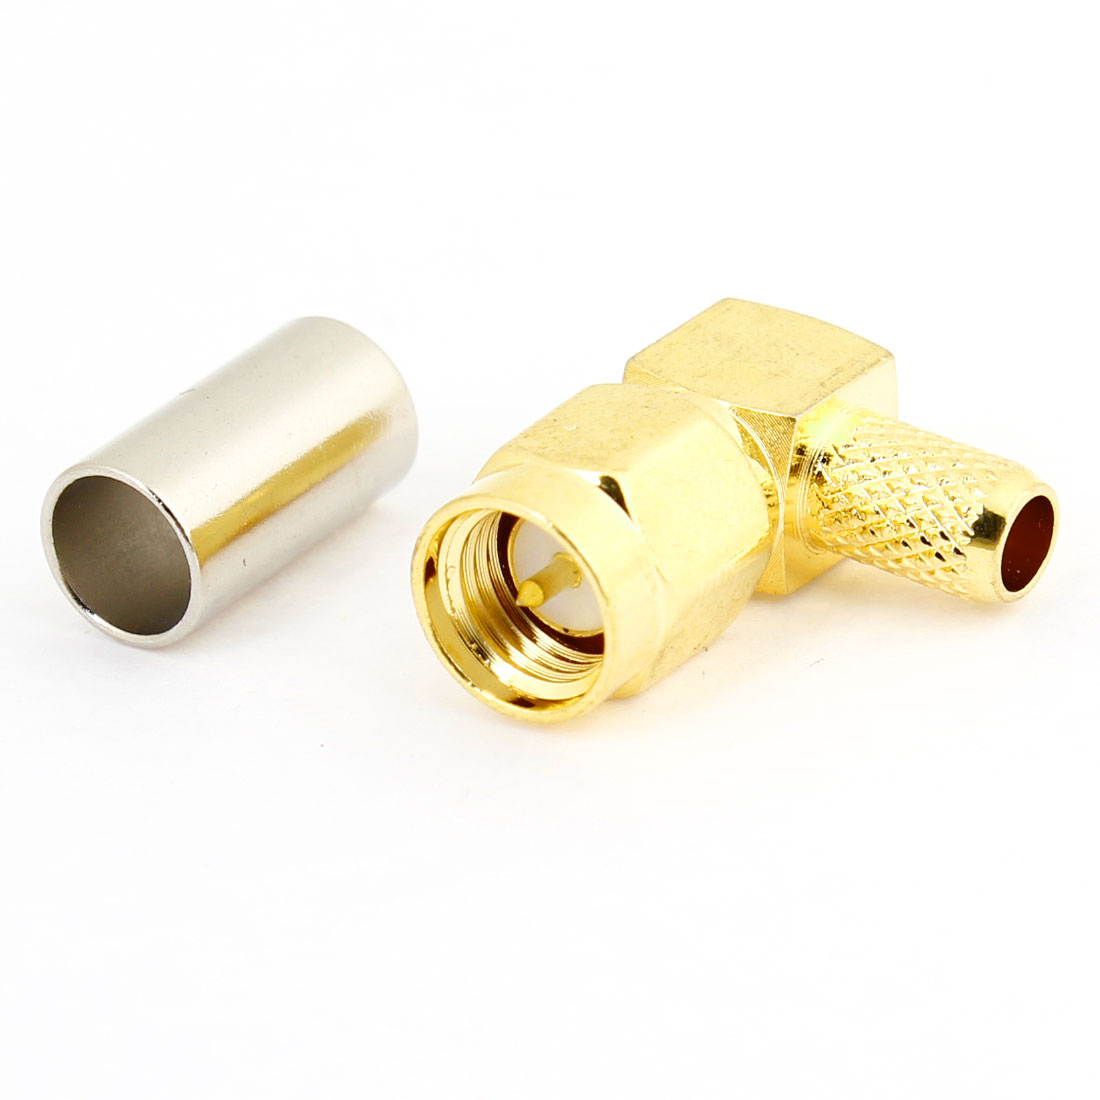 SMA-JW-3 Male Plug Right Angle Crimp RF Connector Adapter Gold Tone